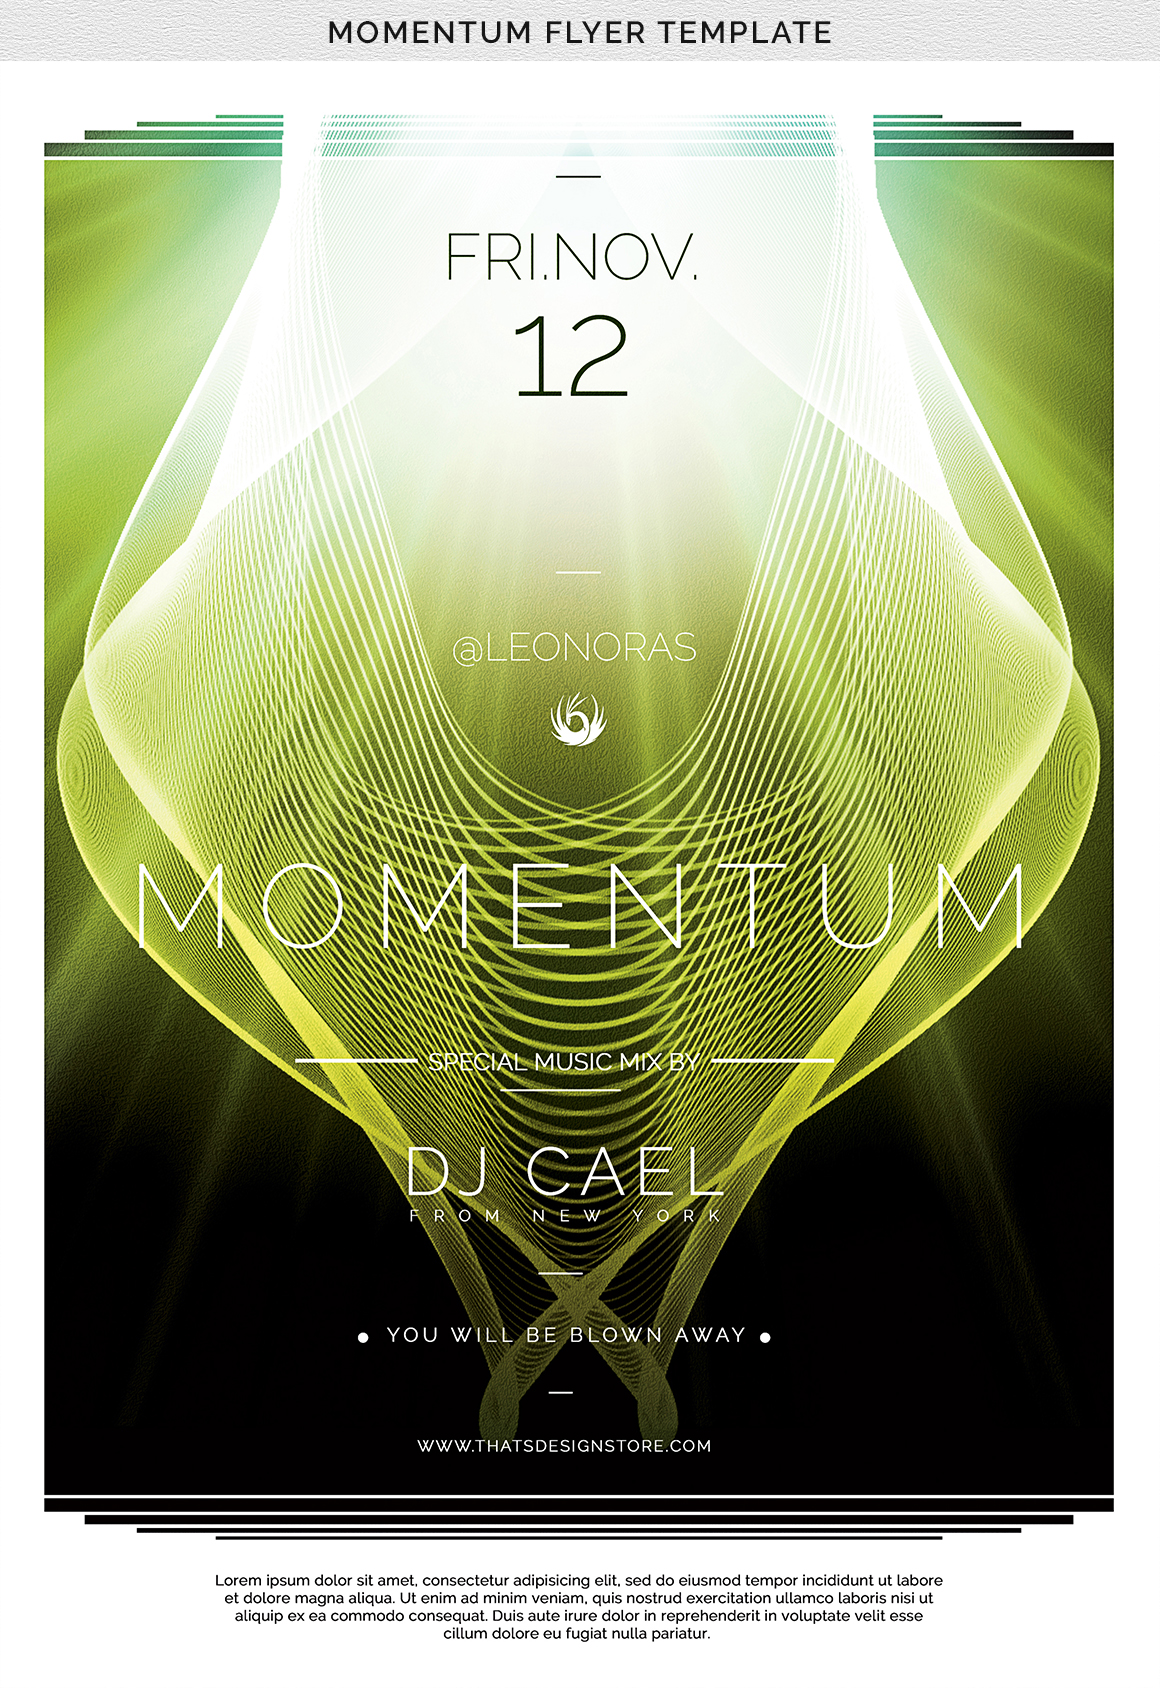 Momentum Flyer Template example image 8